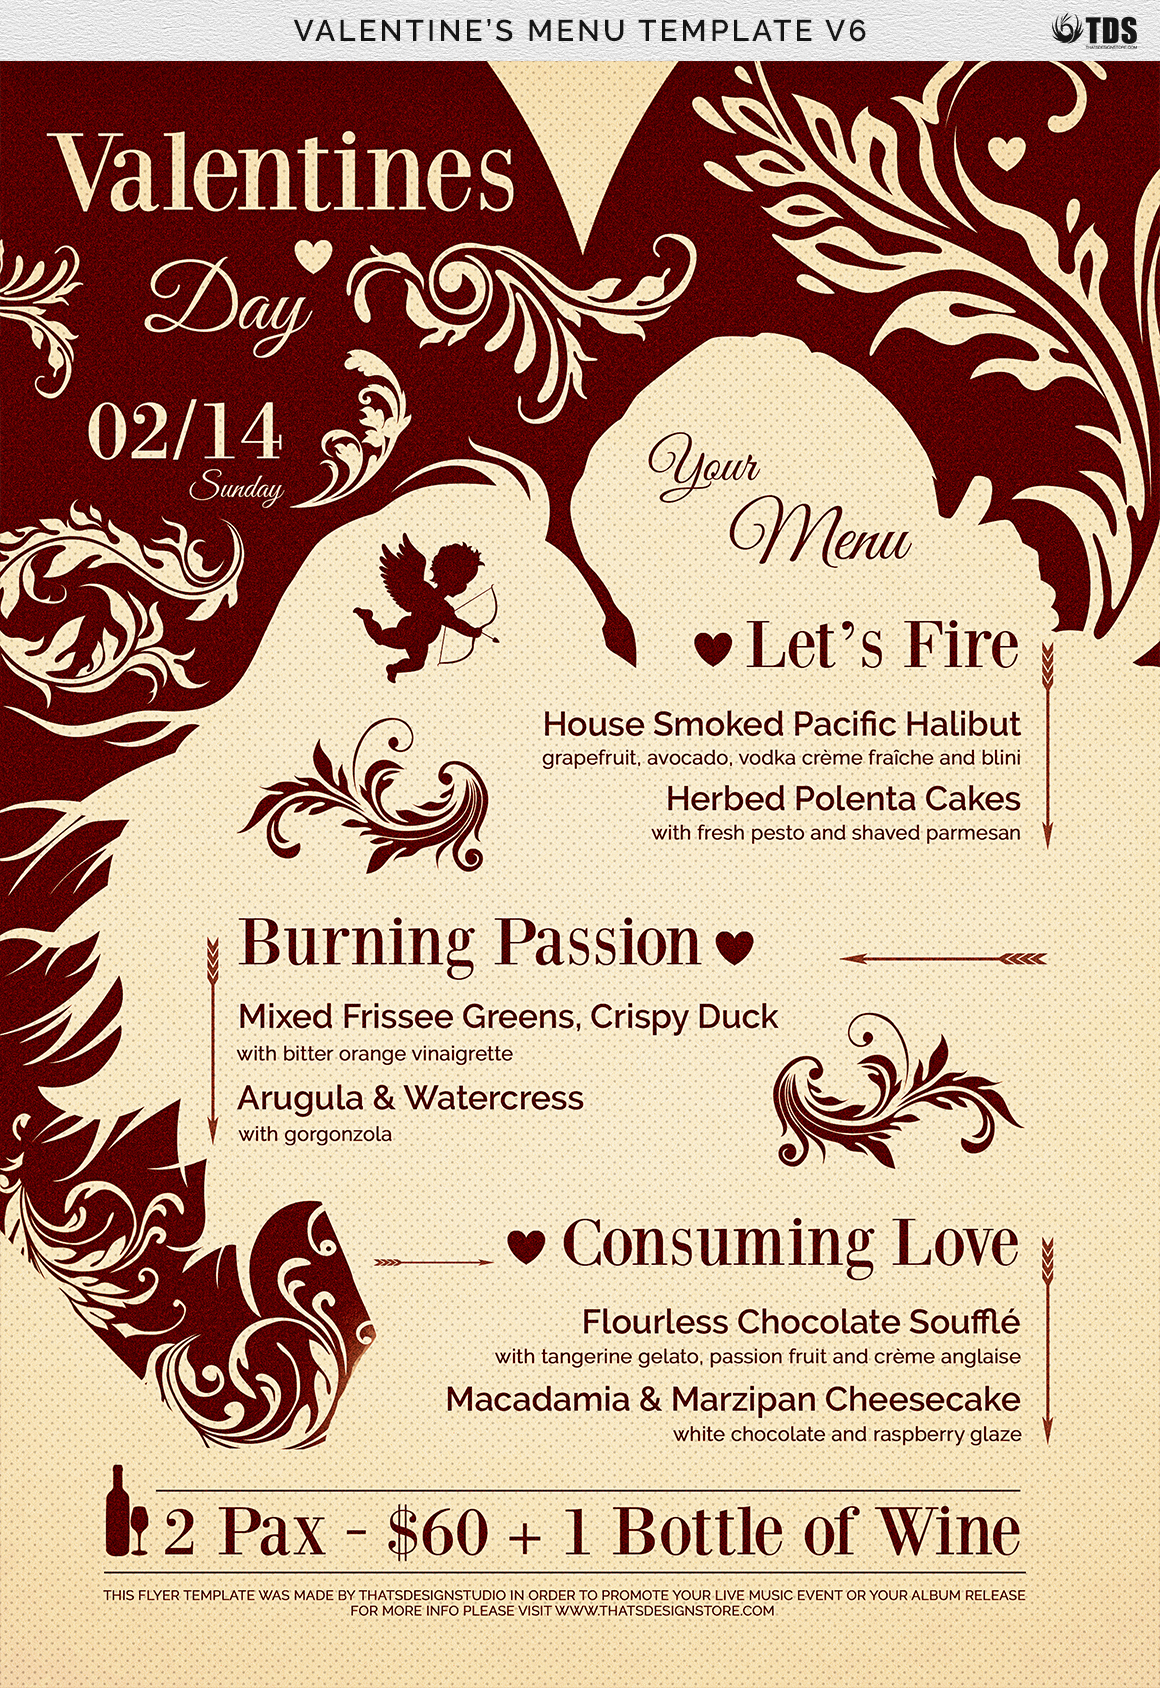 Valentines Day Menu Template V6 example image 7